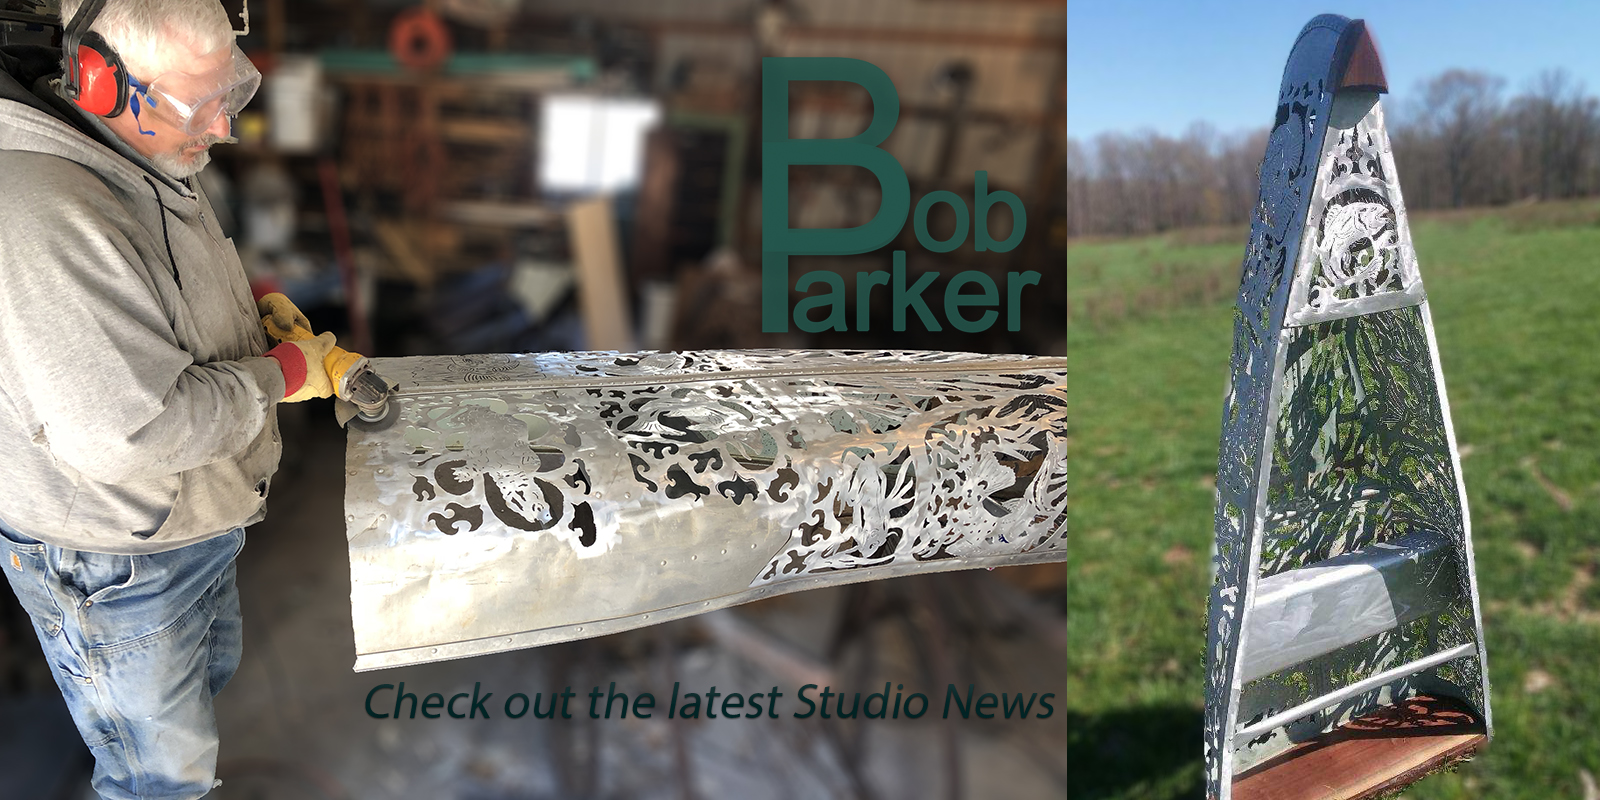 Bob Parker Fine Metal Art | Check out the latest Studio News